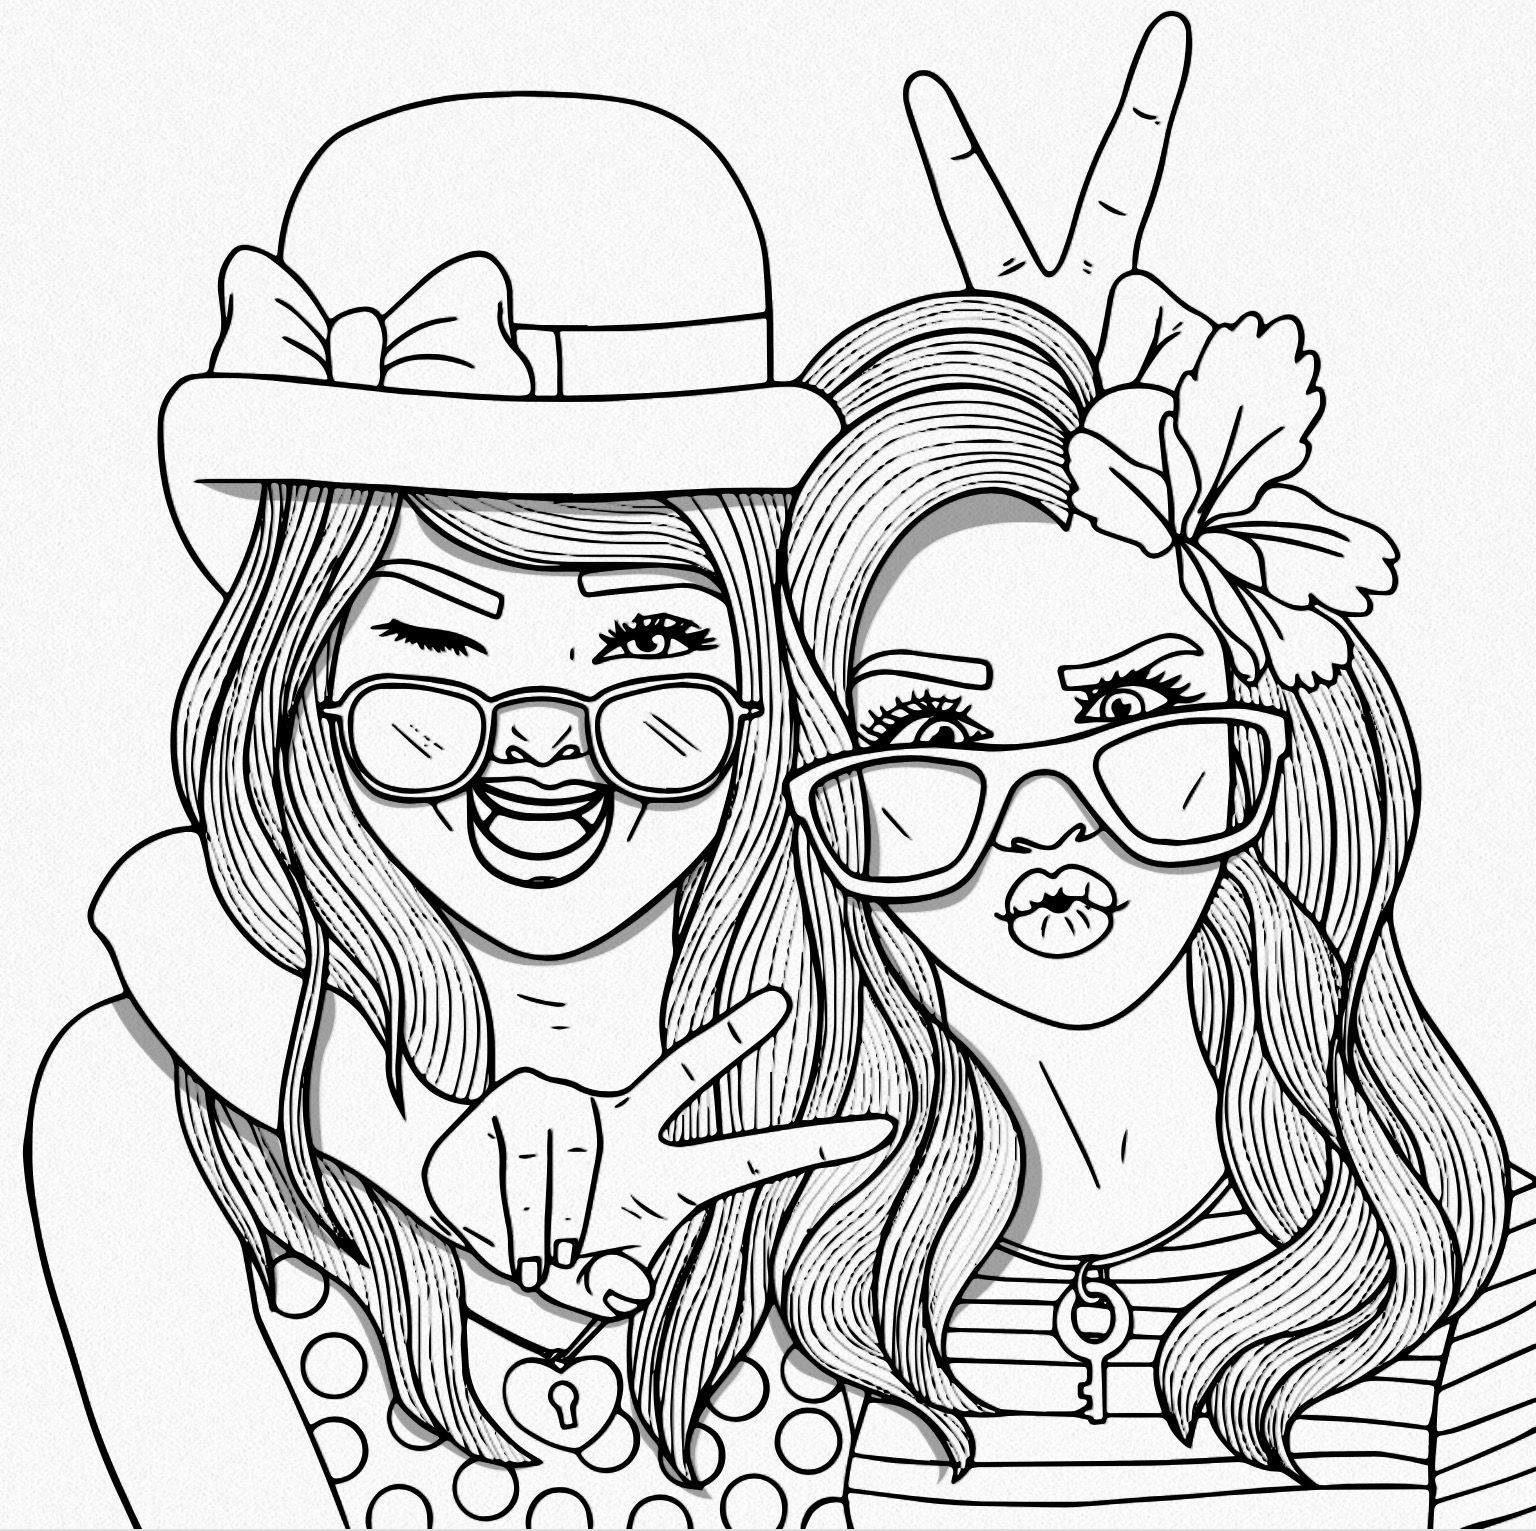 Bestie With Images People Coloring Pages Cute Coloring Pages